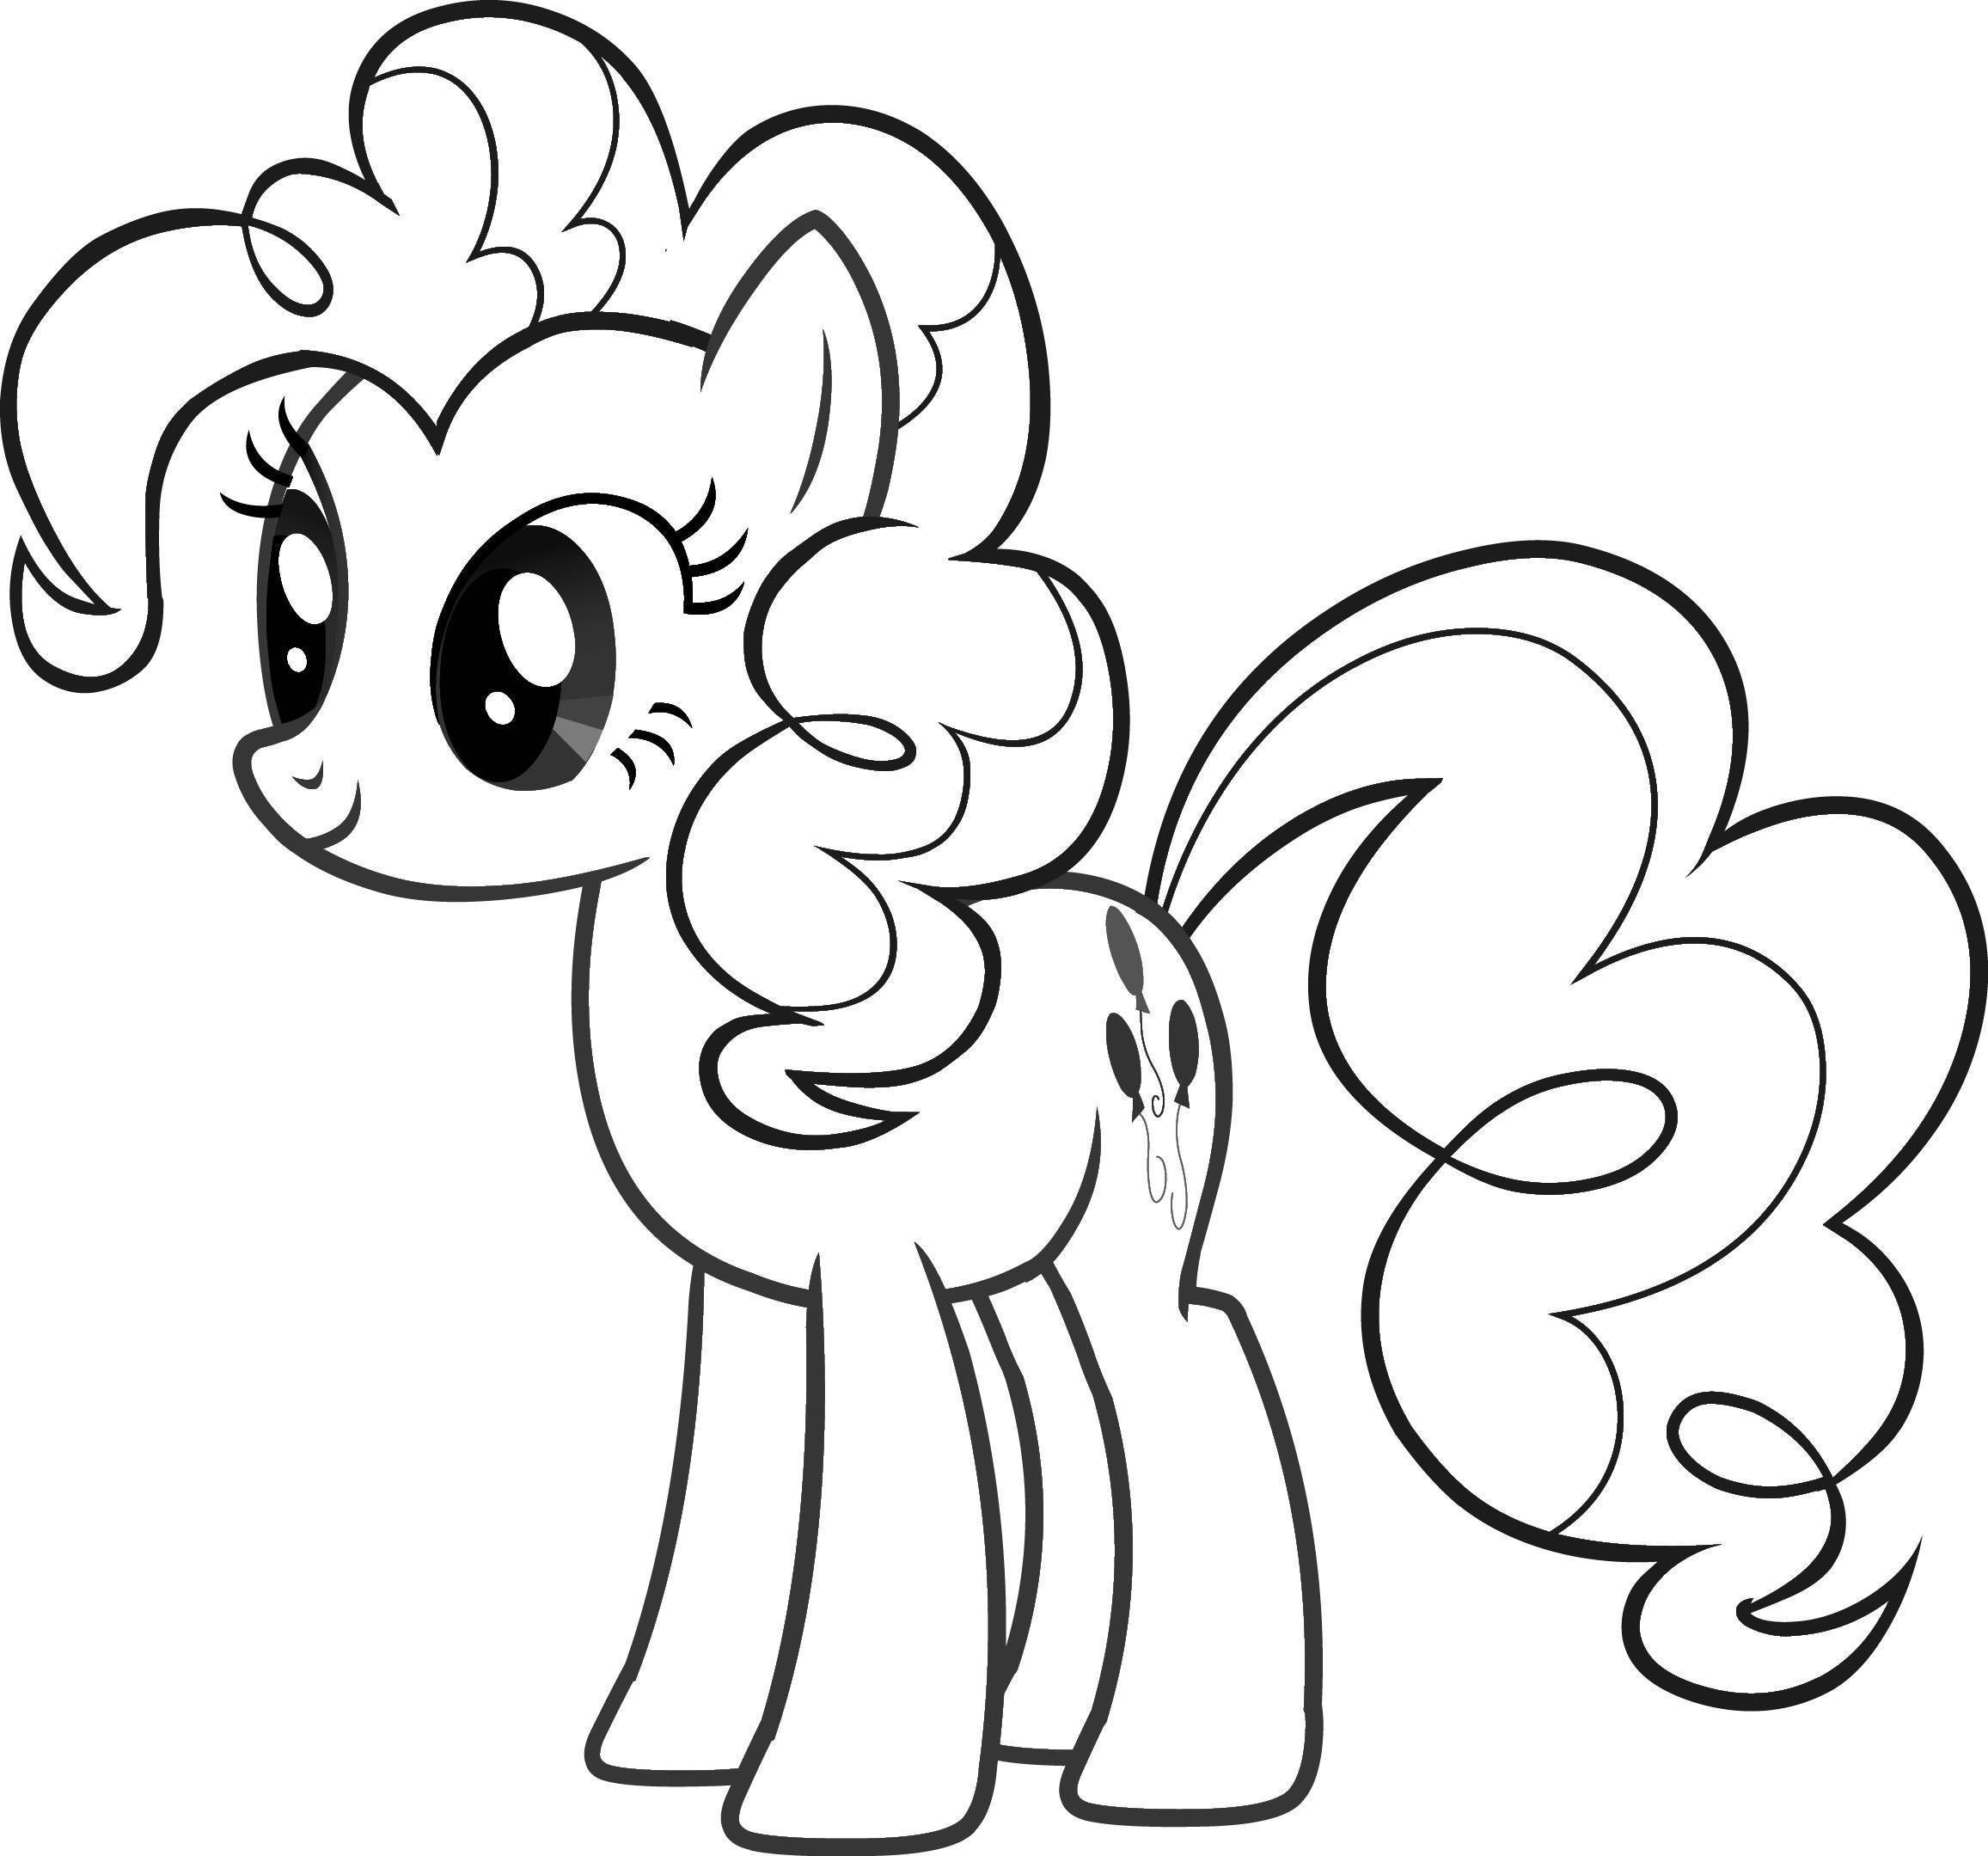 My Little Pony Bilder Zum Ausmalen Inspirierend Best Little Pony Coloring Pages Coloring Pages Schön Ausmalbilder My Stock